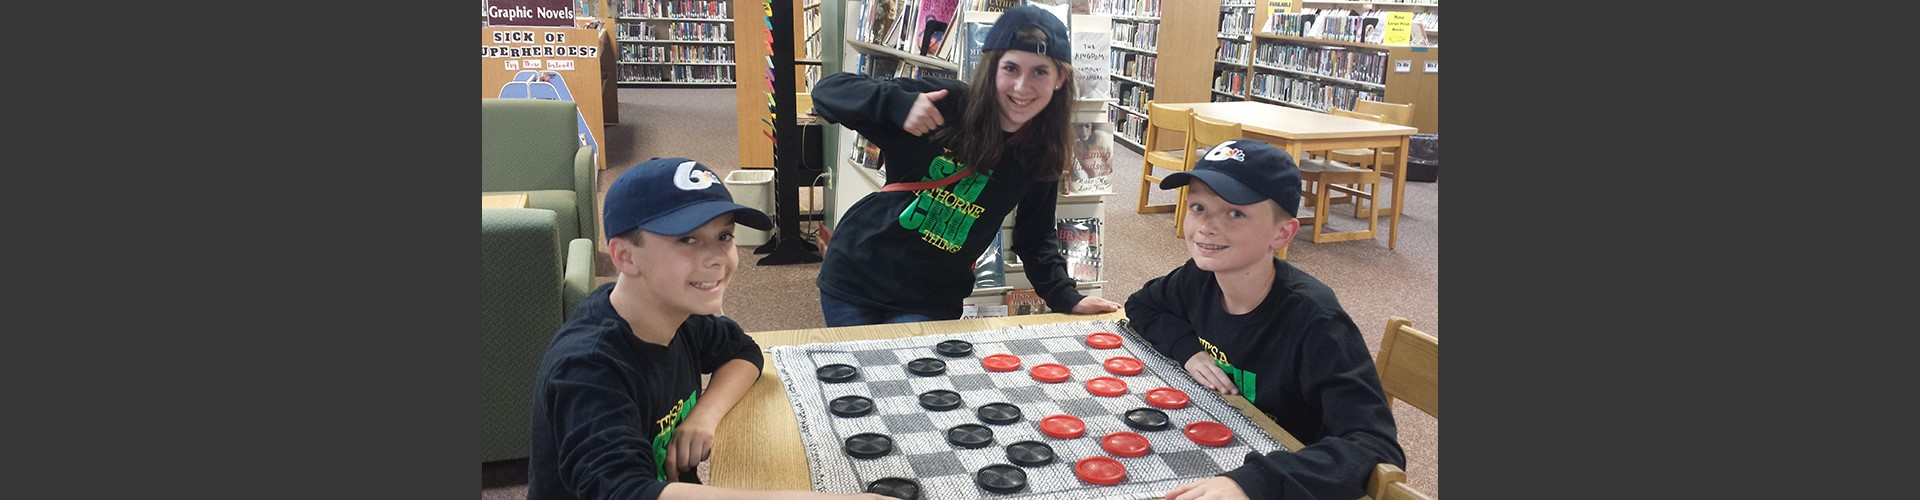 Students playing checkers in library.